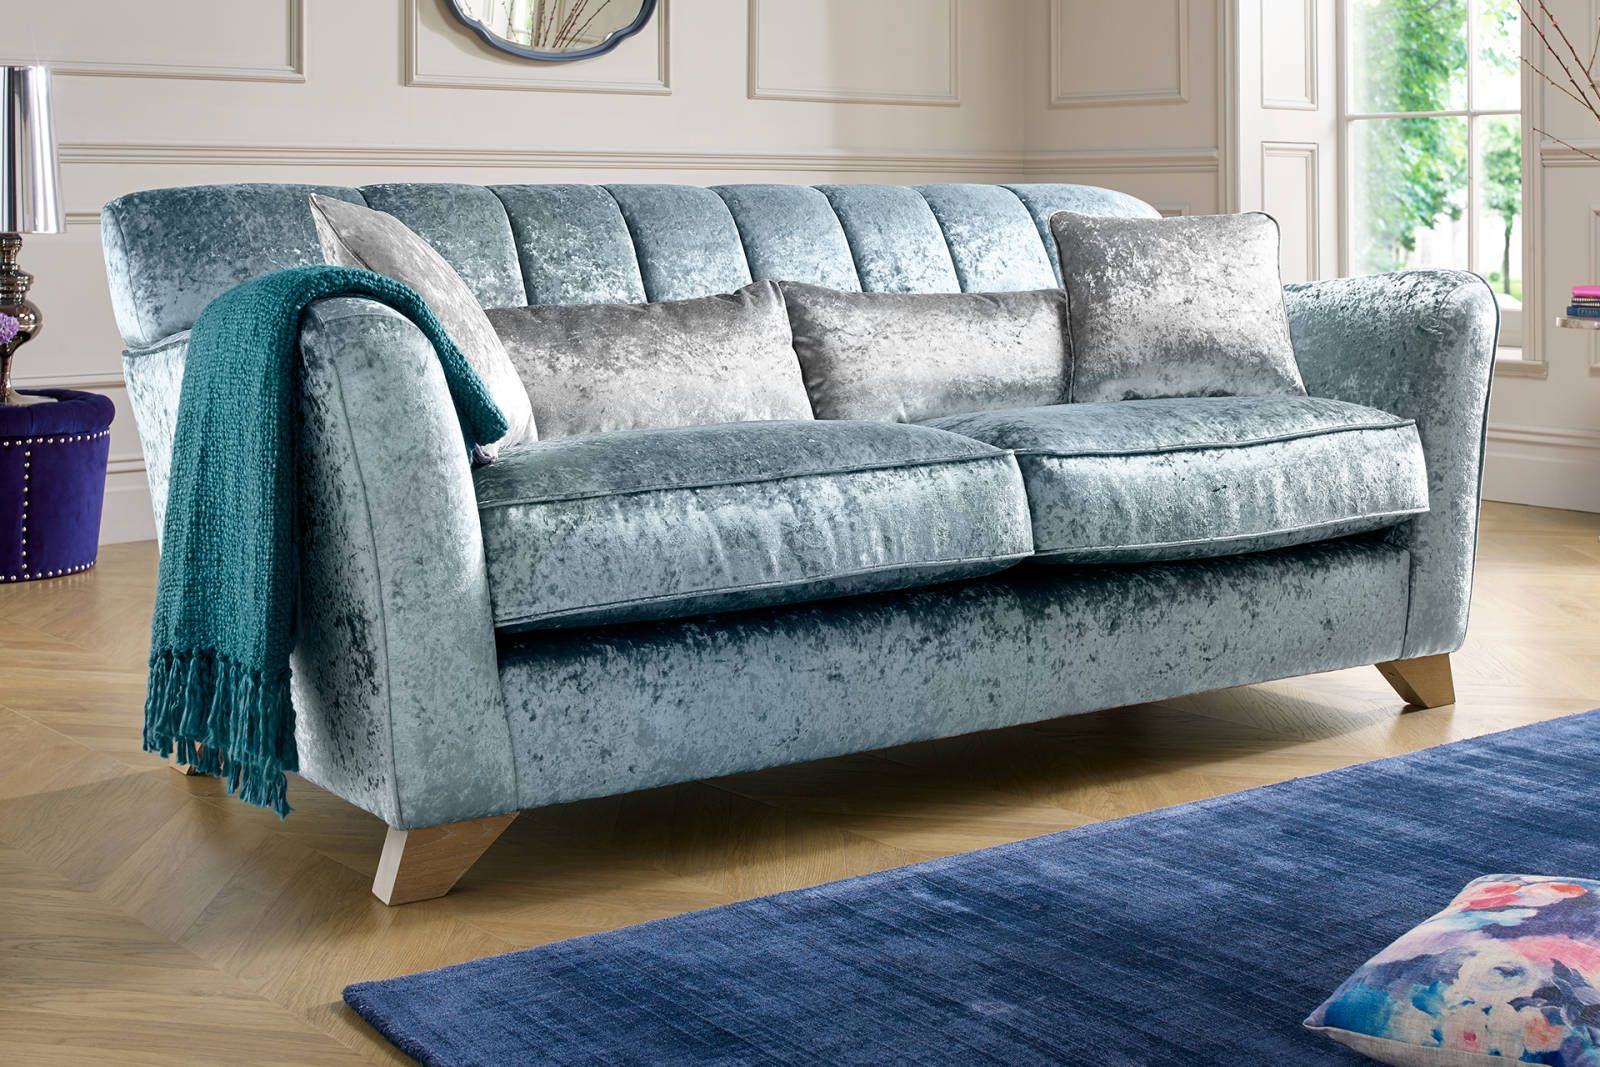 Topaz Sofology Leather Sofa Bed Real Leather Sofas Fabric Sofa Bed